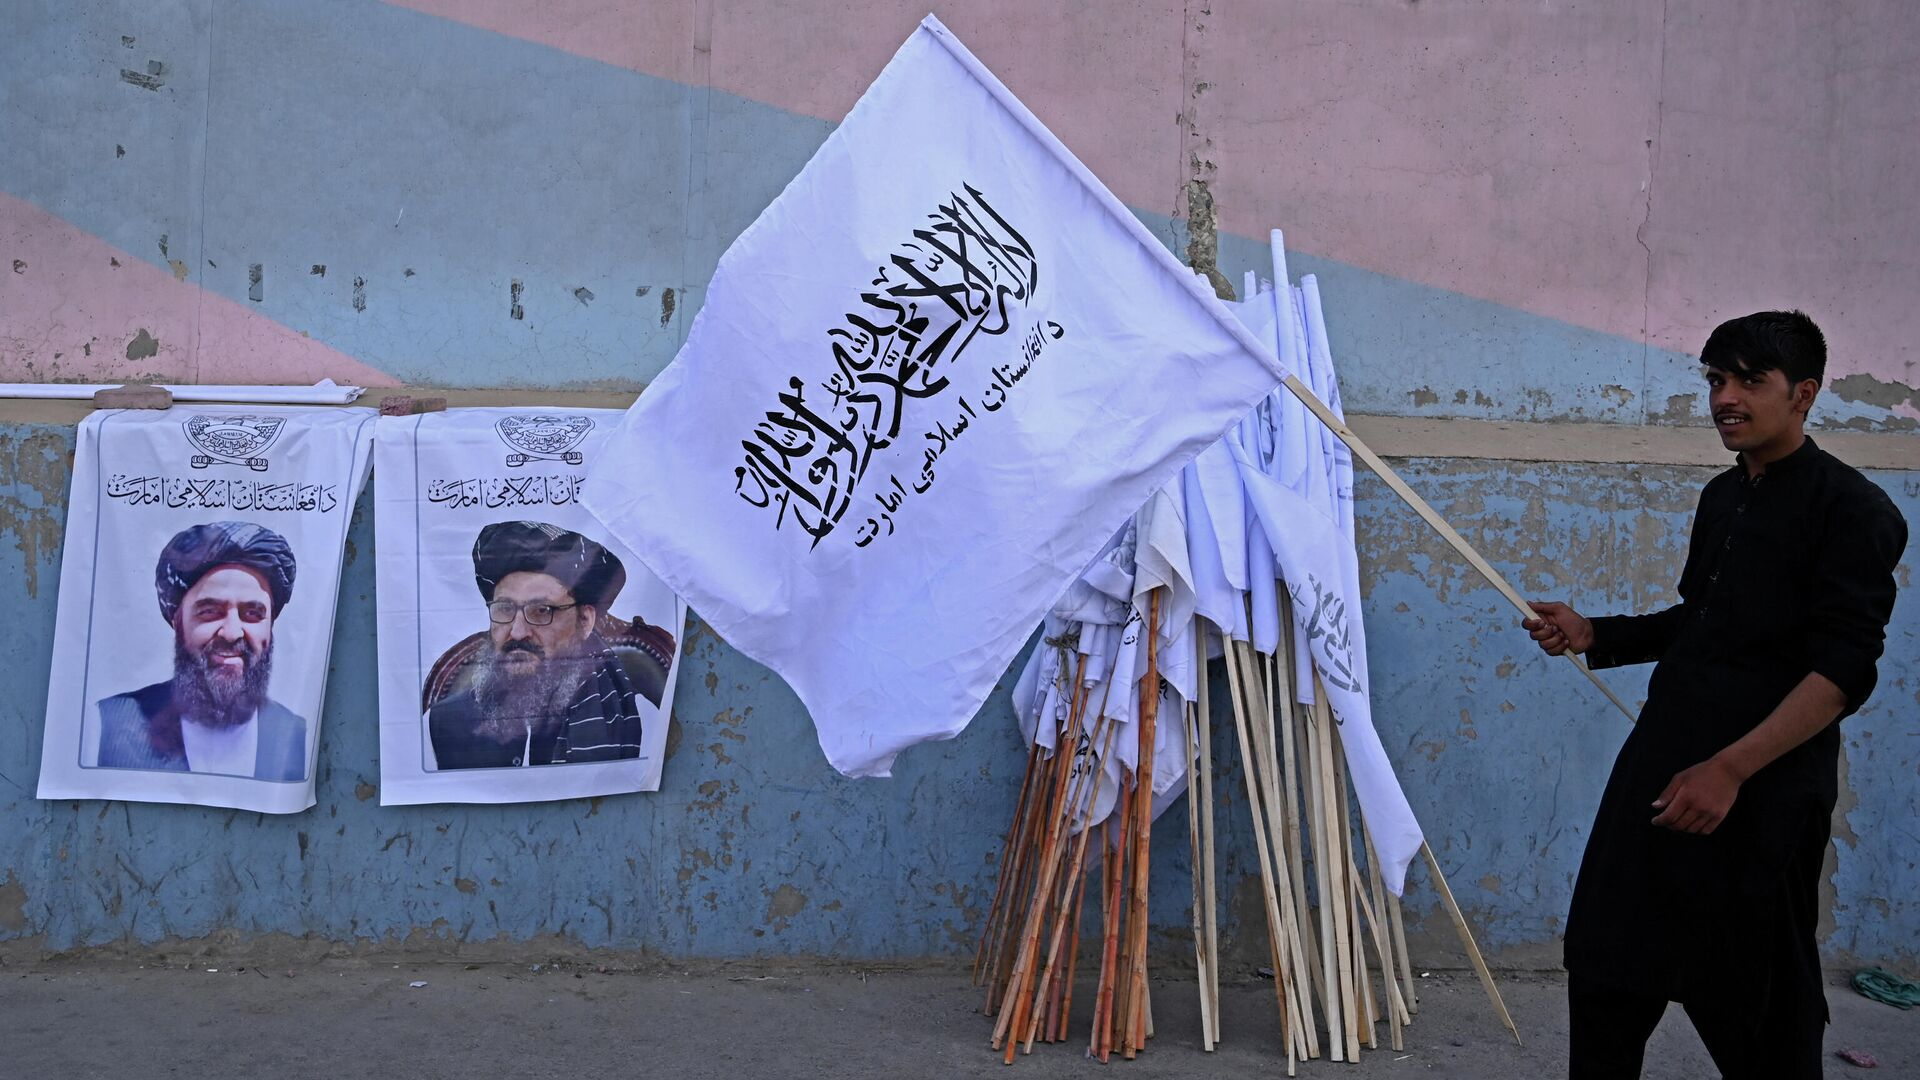 A vendor holds a Taliban flag next to the posters of Taliban leaders Mullah Abdul Ghani Baradar and Amir Khan Muttaqi (L) as he waits for customers along a street in Kabul on August 27, 2021, following the Taliban's military takeover of Afghanistan - Sputnik International, 1920, 22.09.2021